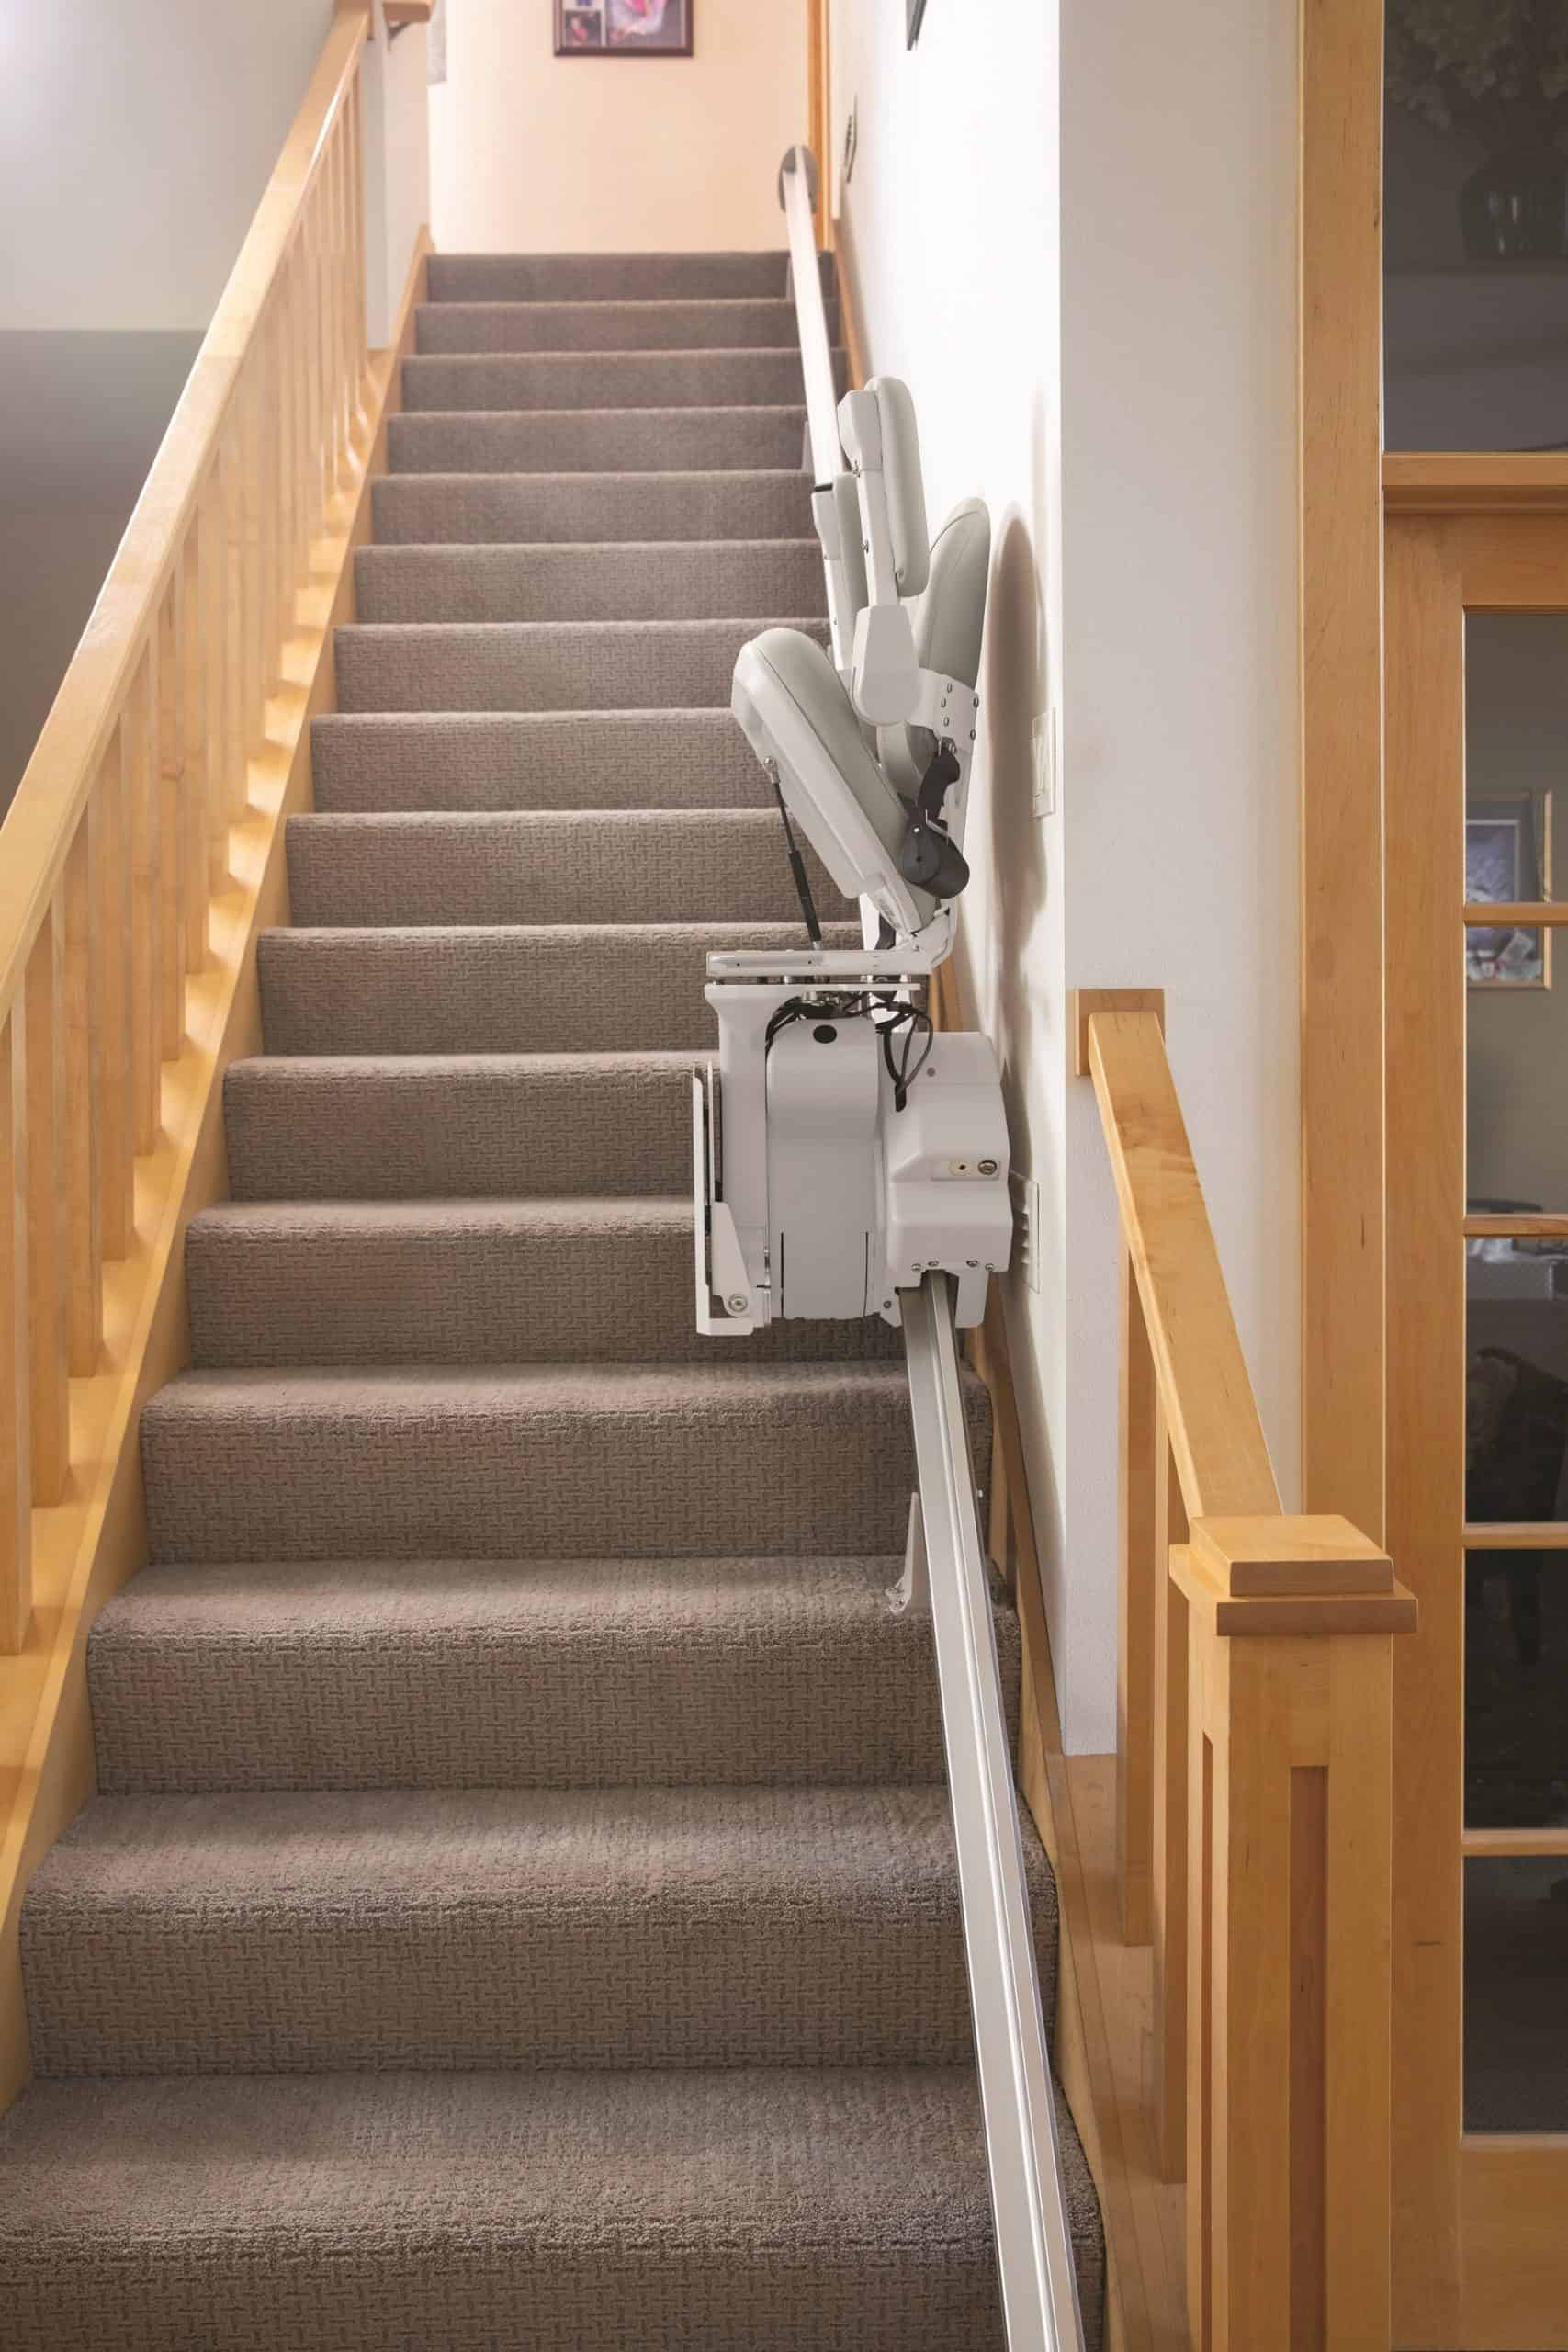 How Stairlifts Help Seniors Live A More Independent Life